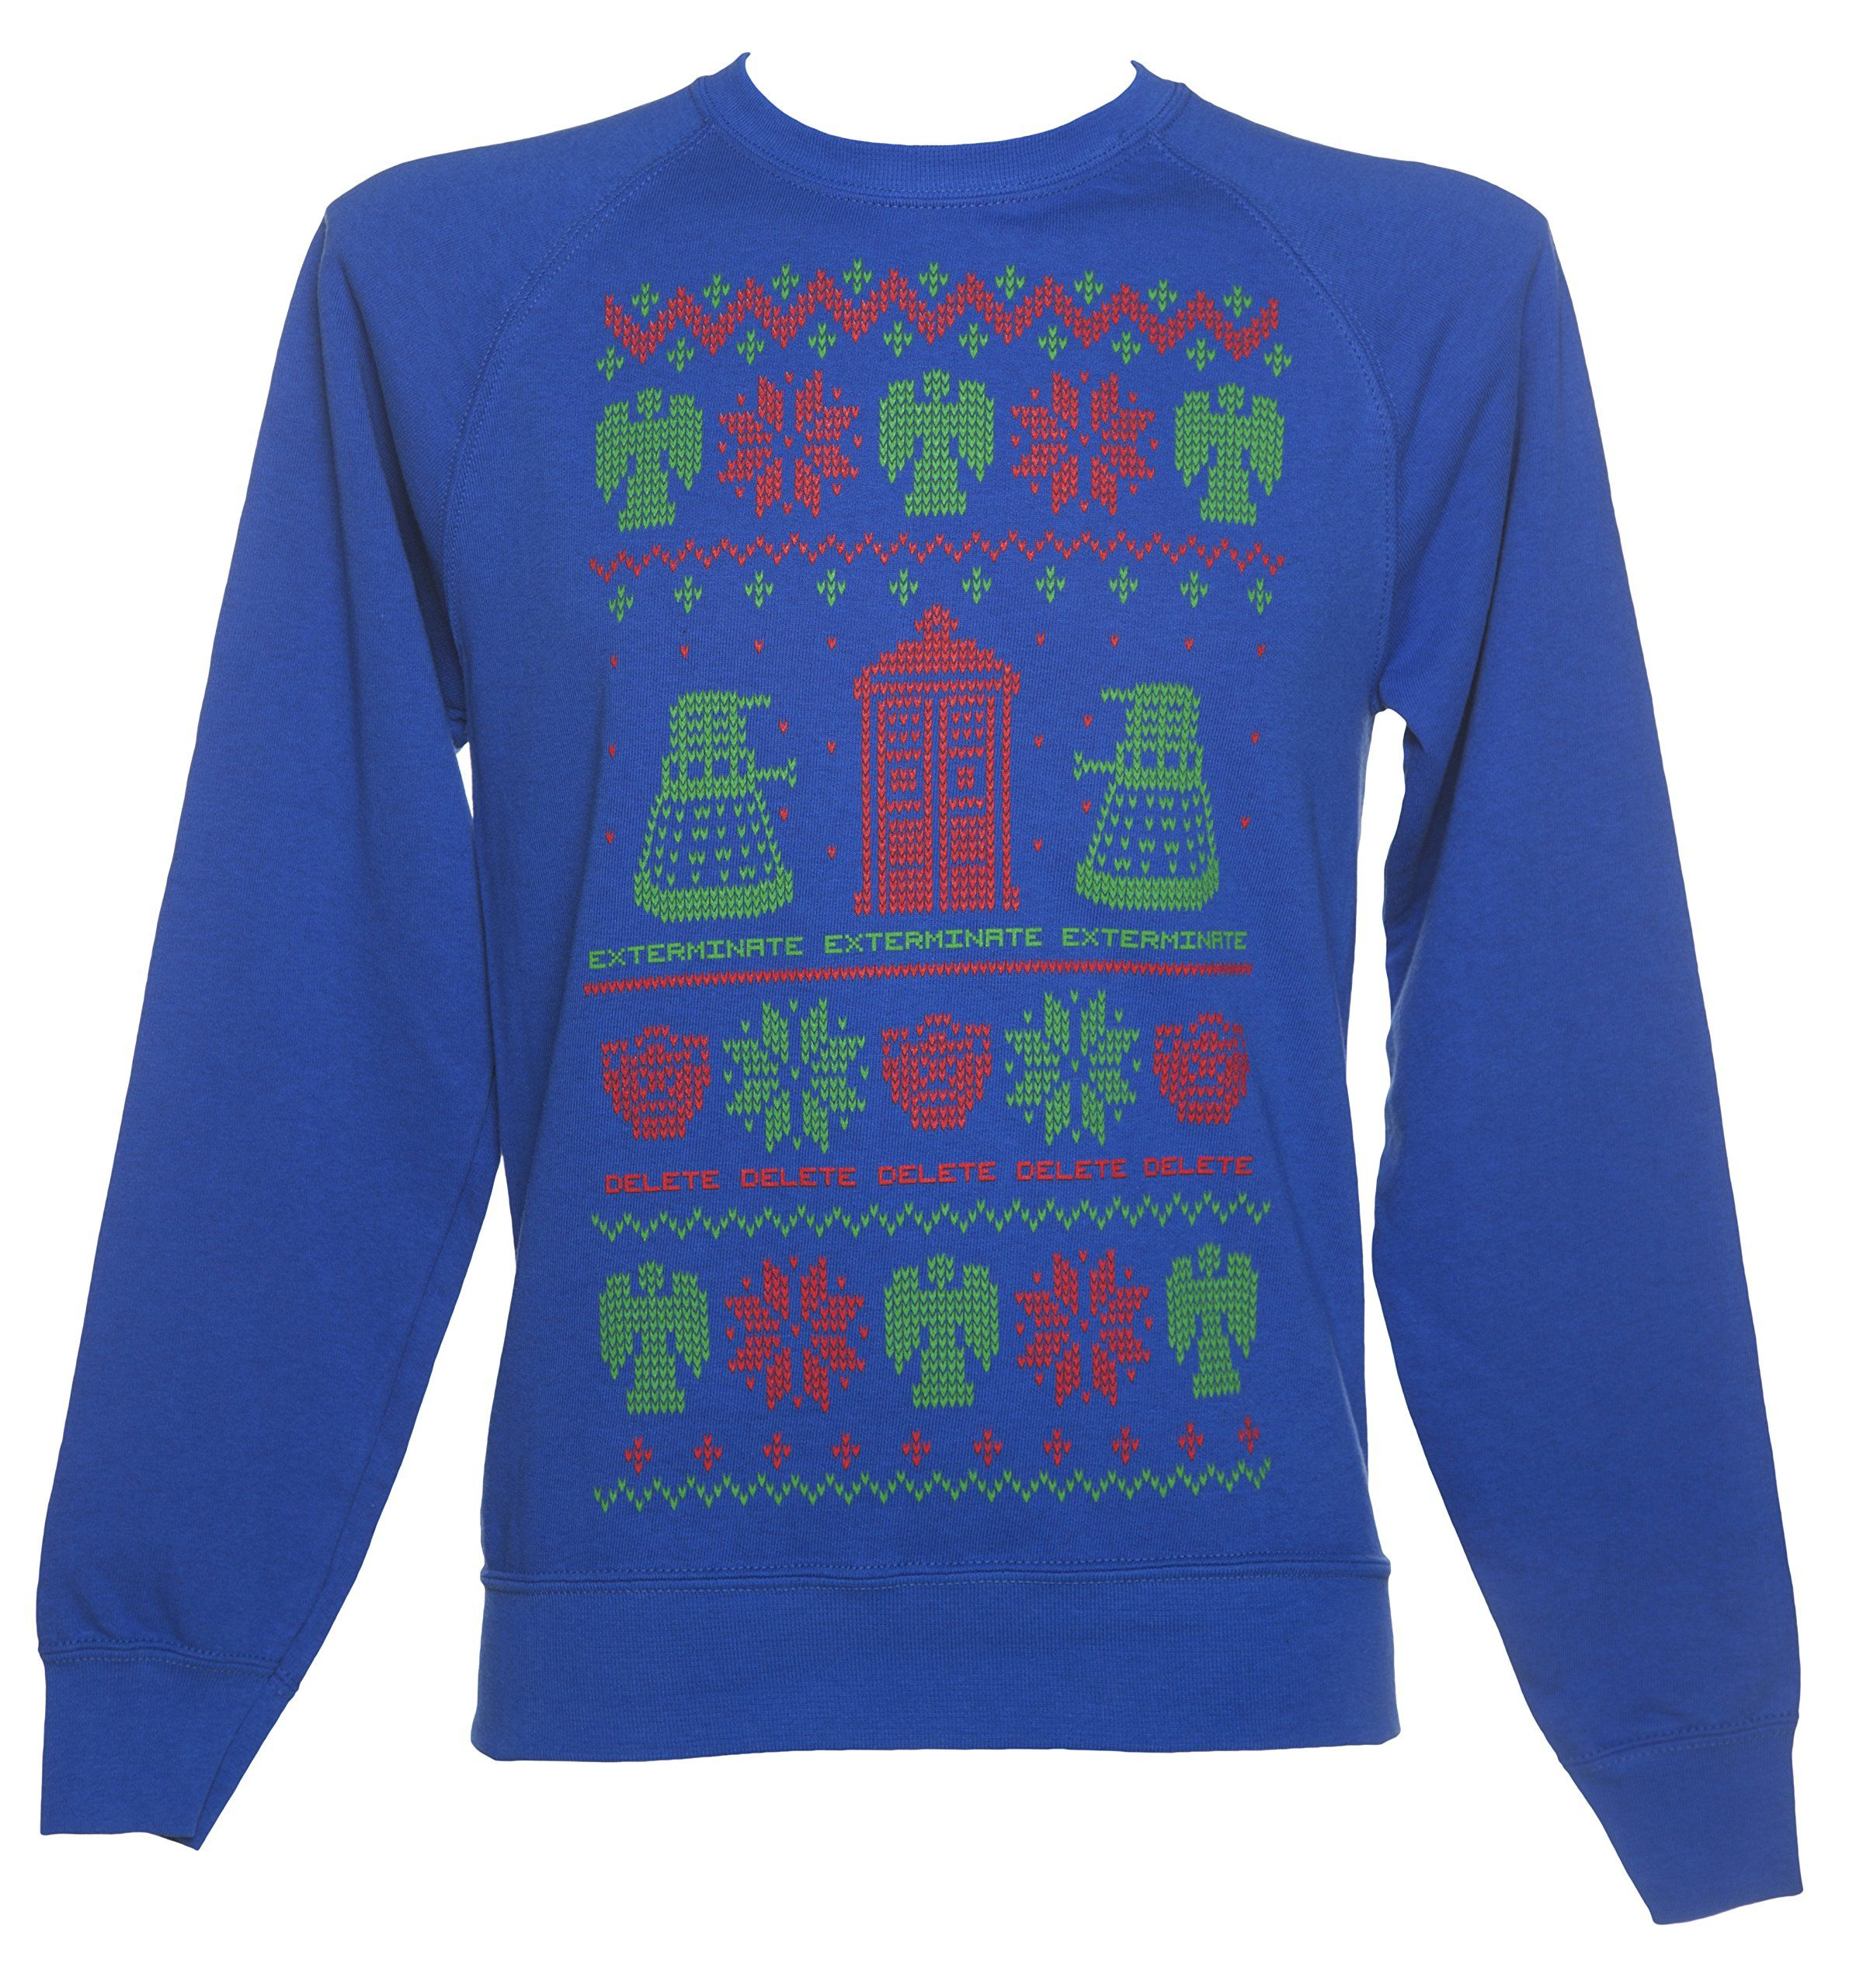 Doctor Who Fair Isle Knit Design Ugly Christmas Sweater | The Best ...